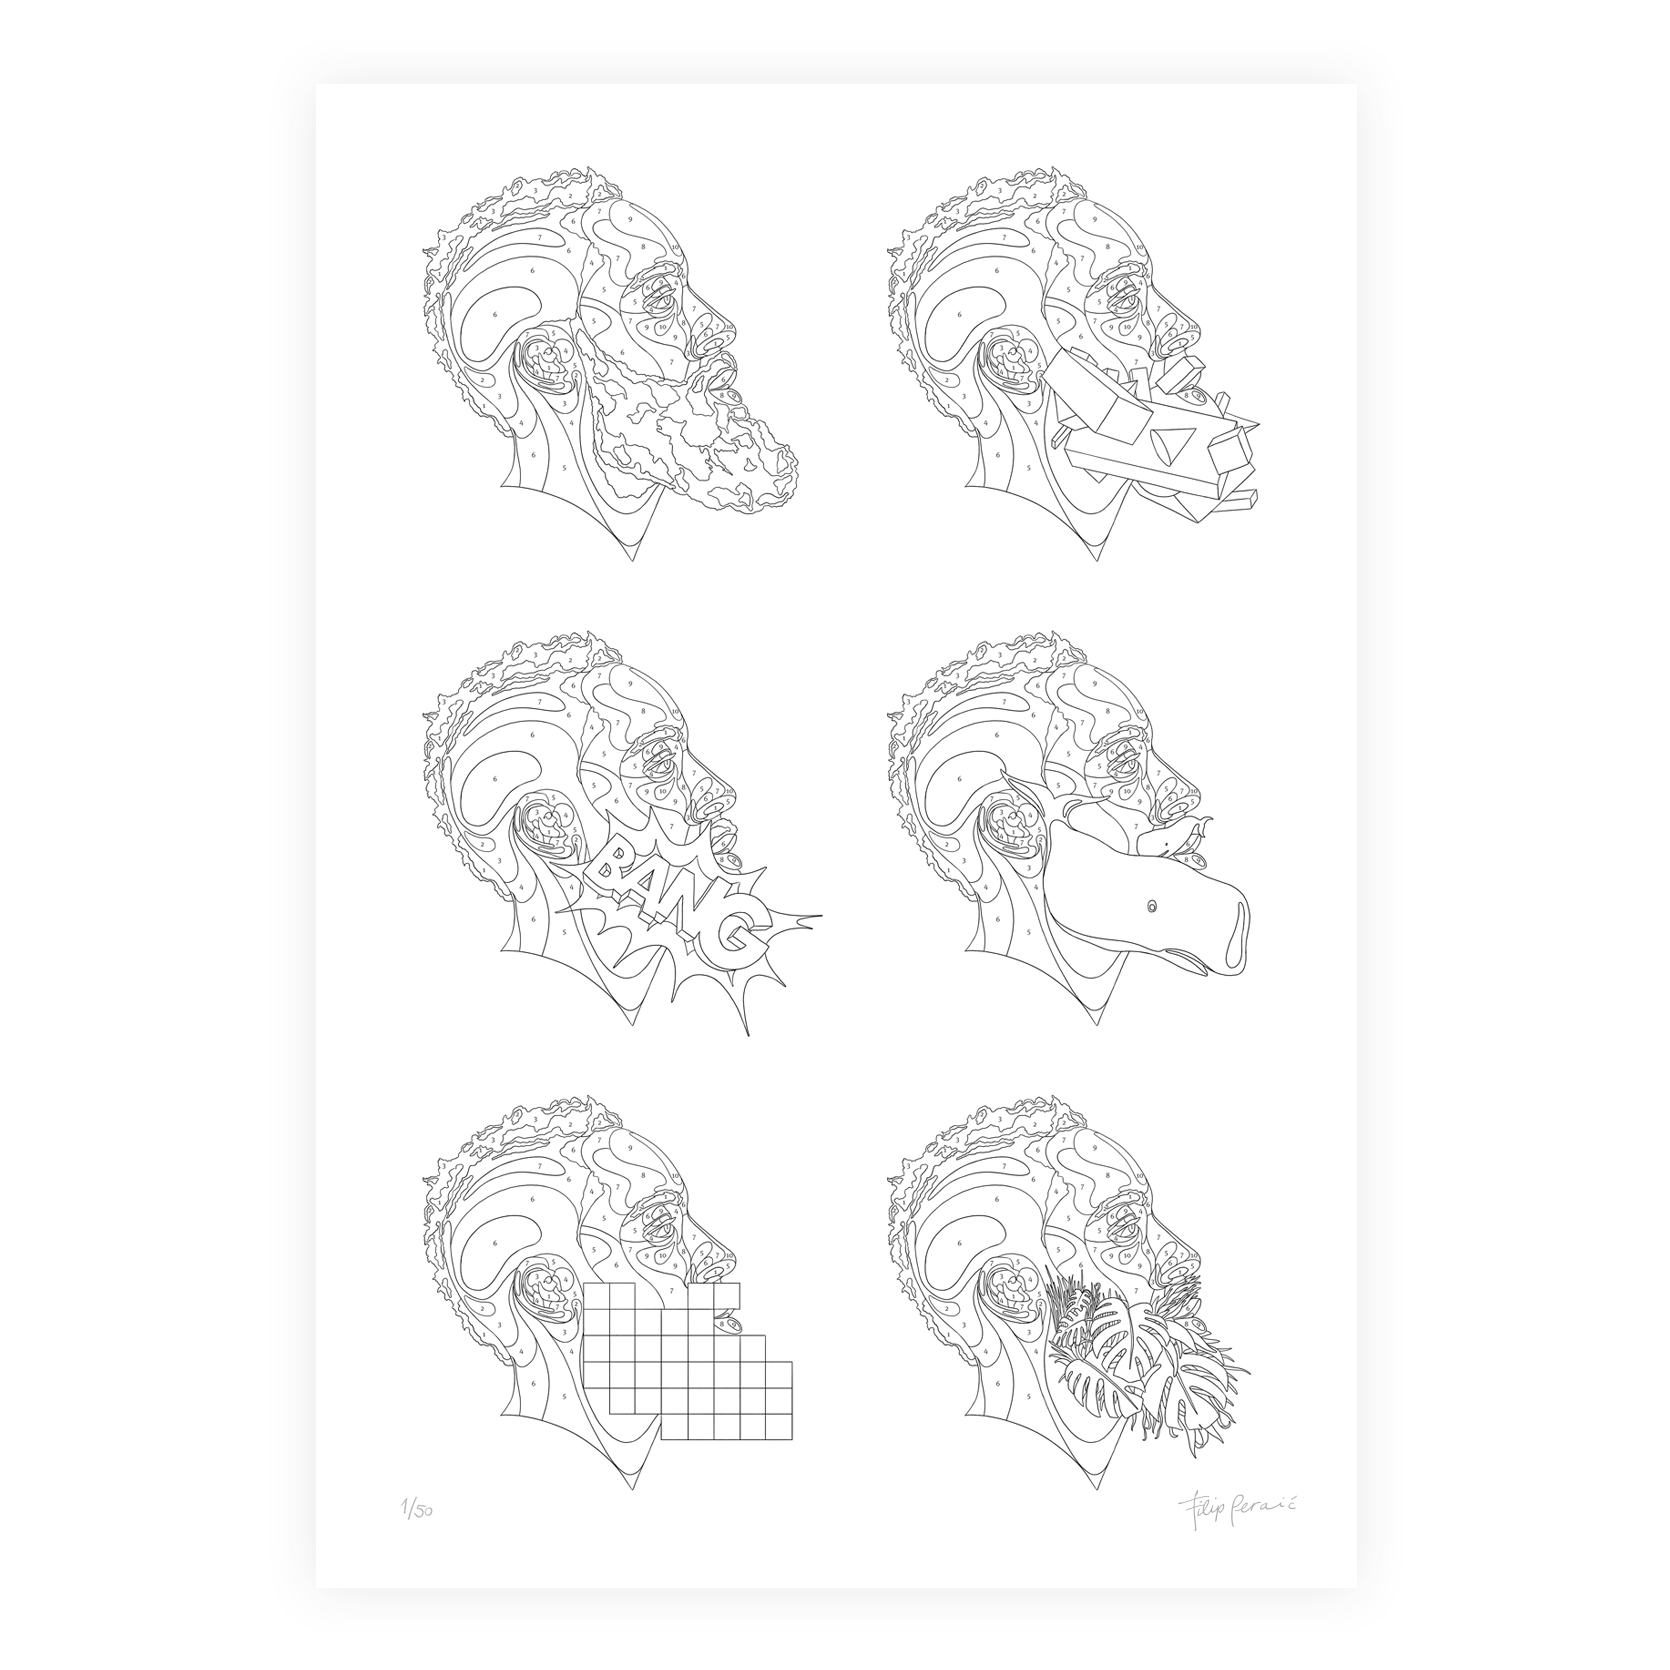 Coloring template with six beard designs